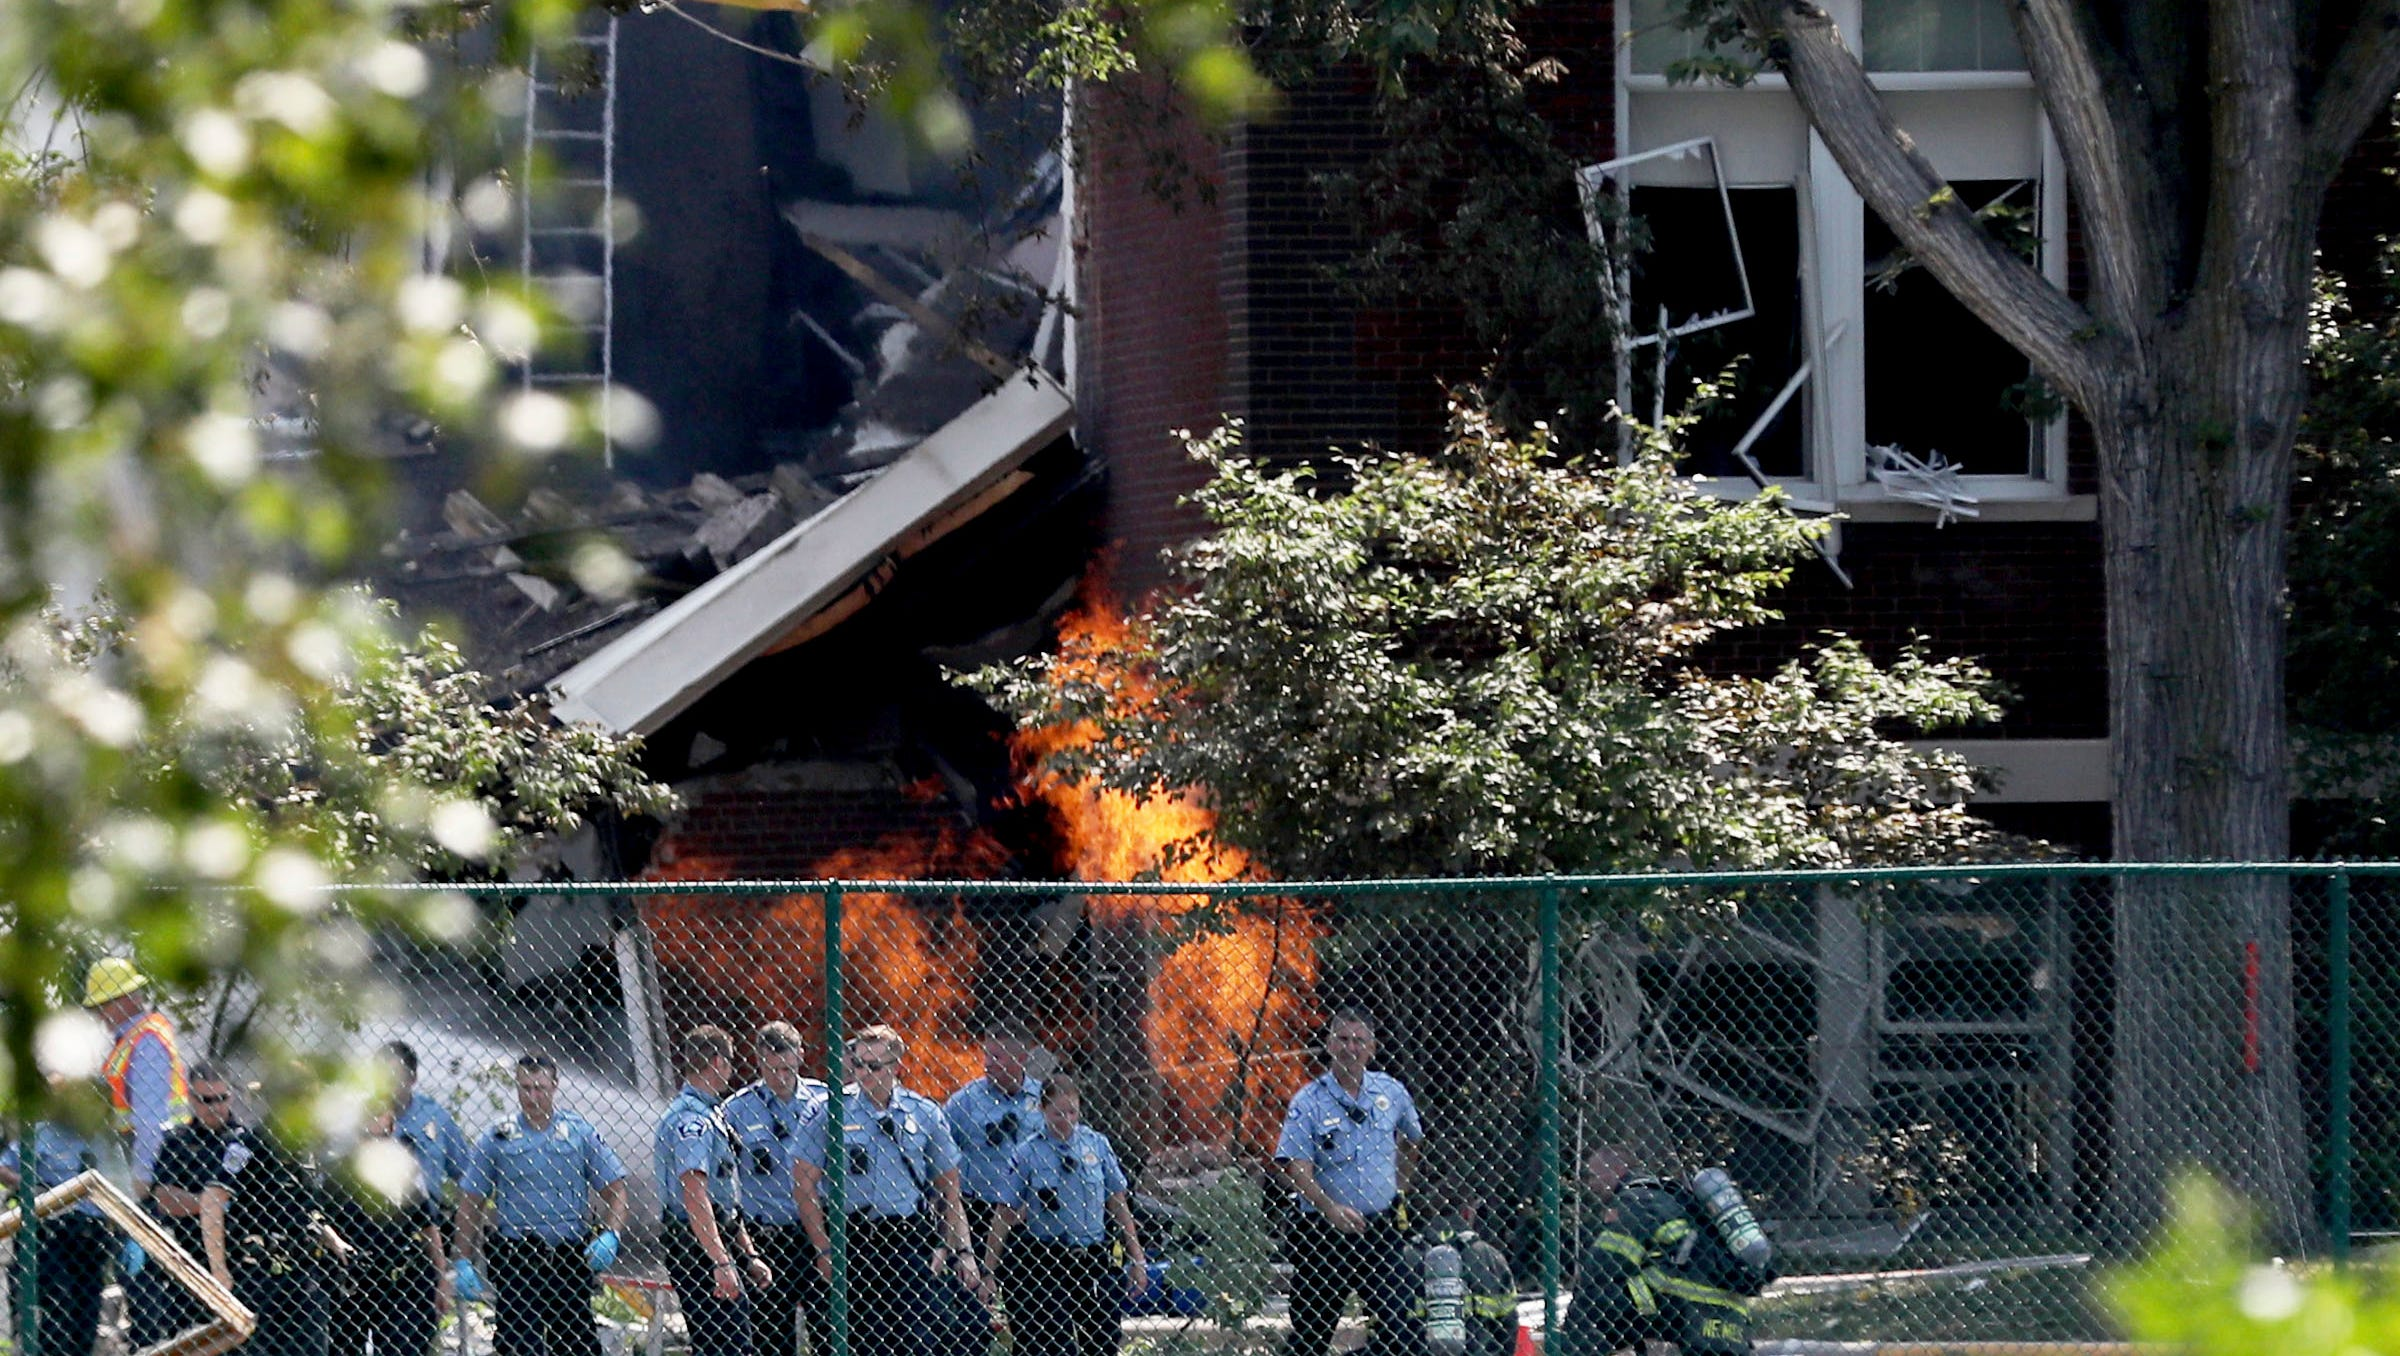 Investigators Probe Minnesota School Explosion That Killed 2